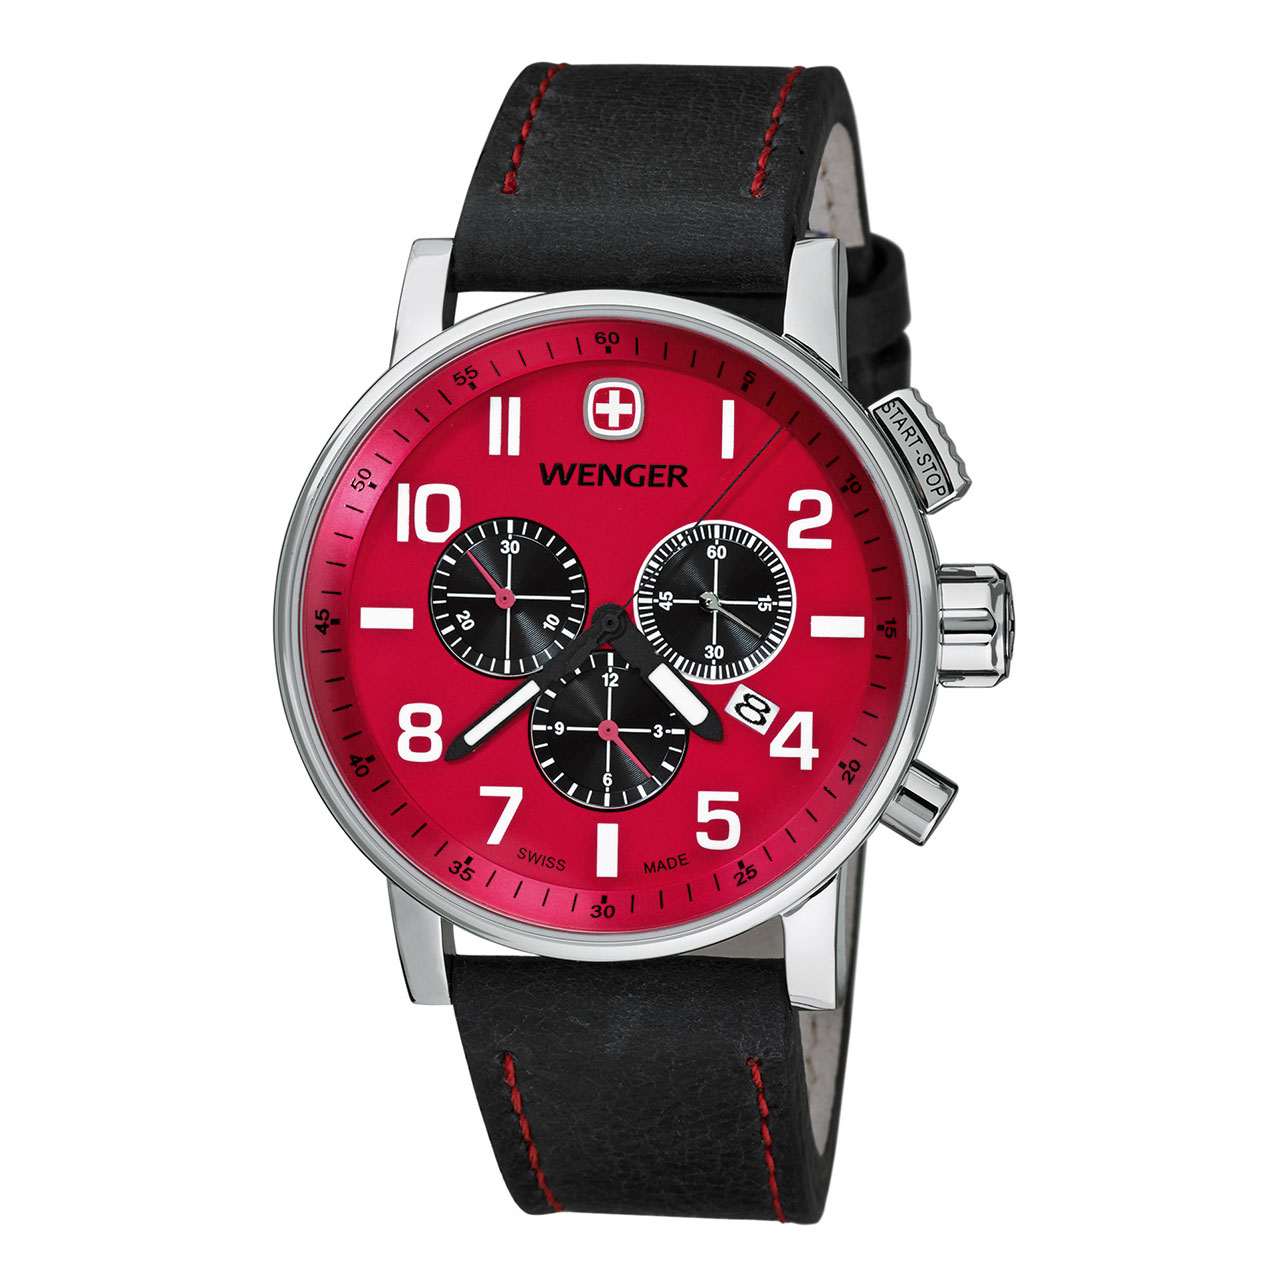 Wenger Commando Chrono Reloaded Quartz Watch